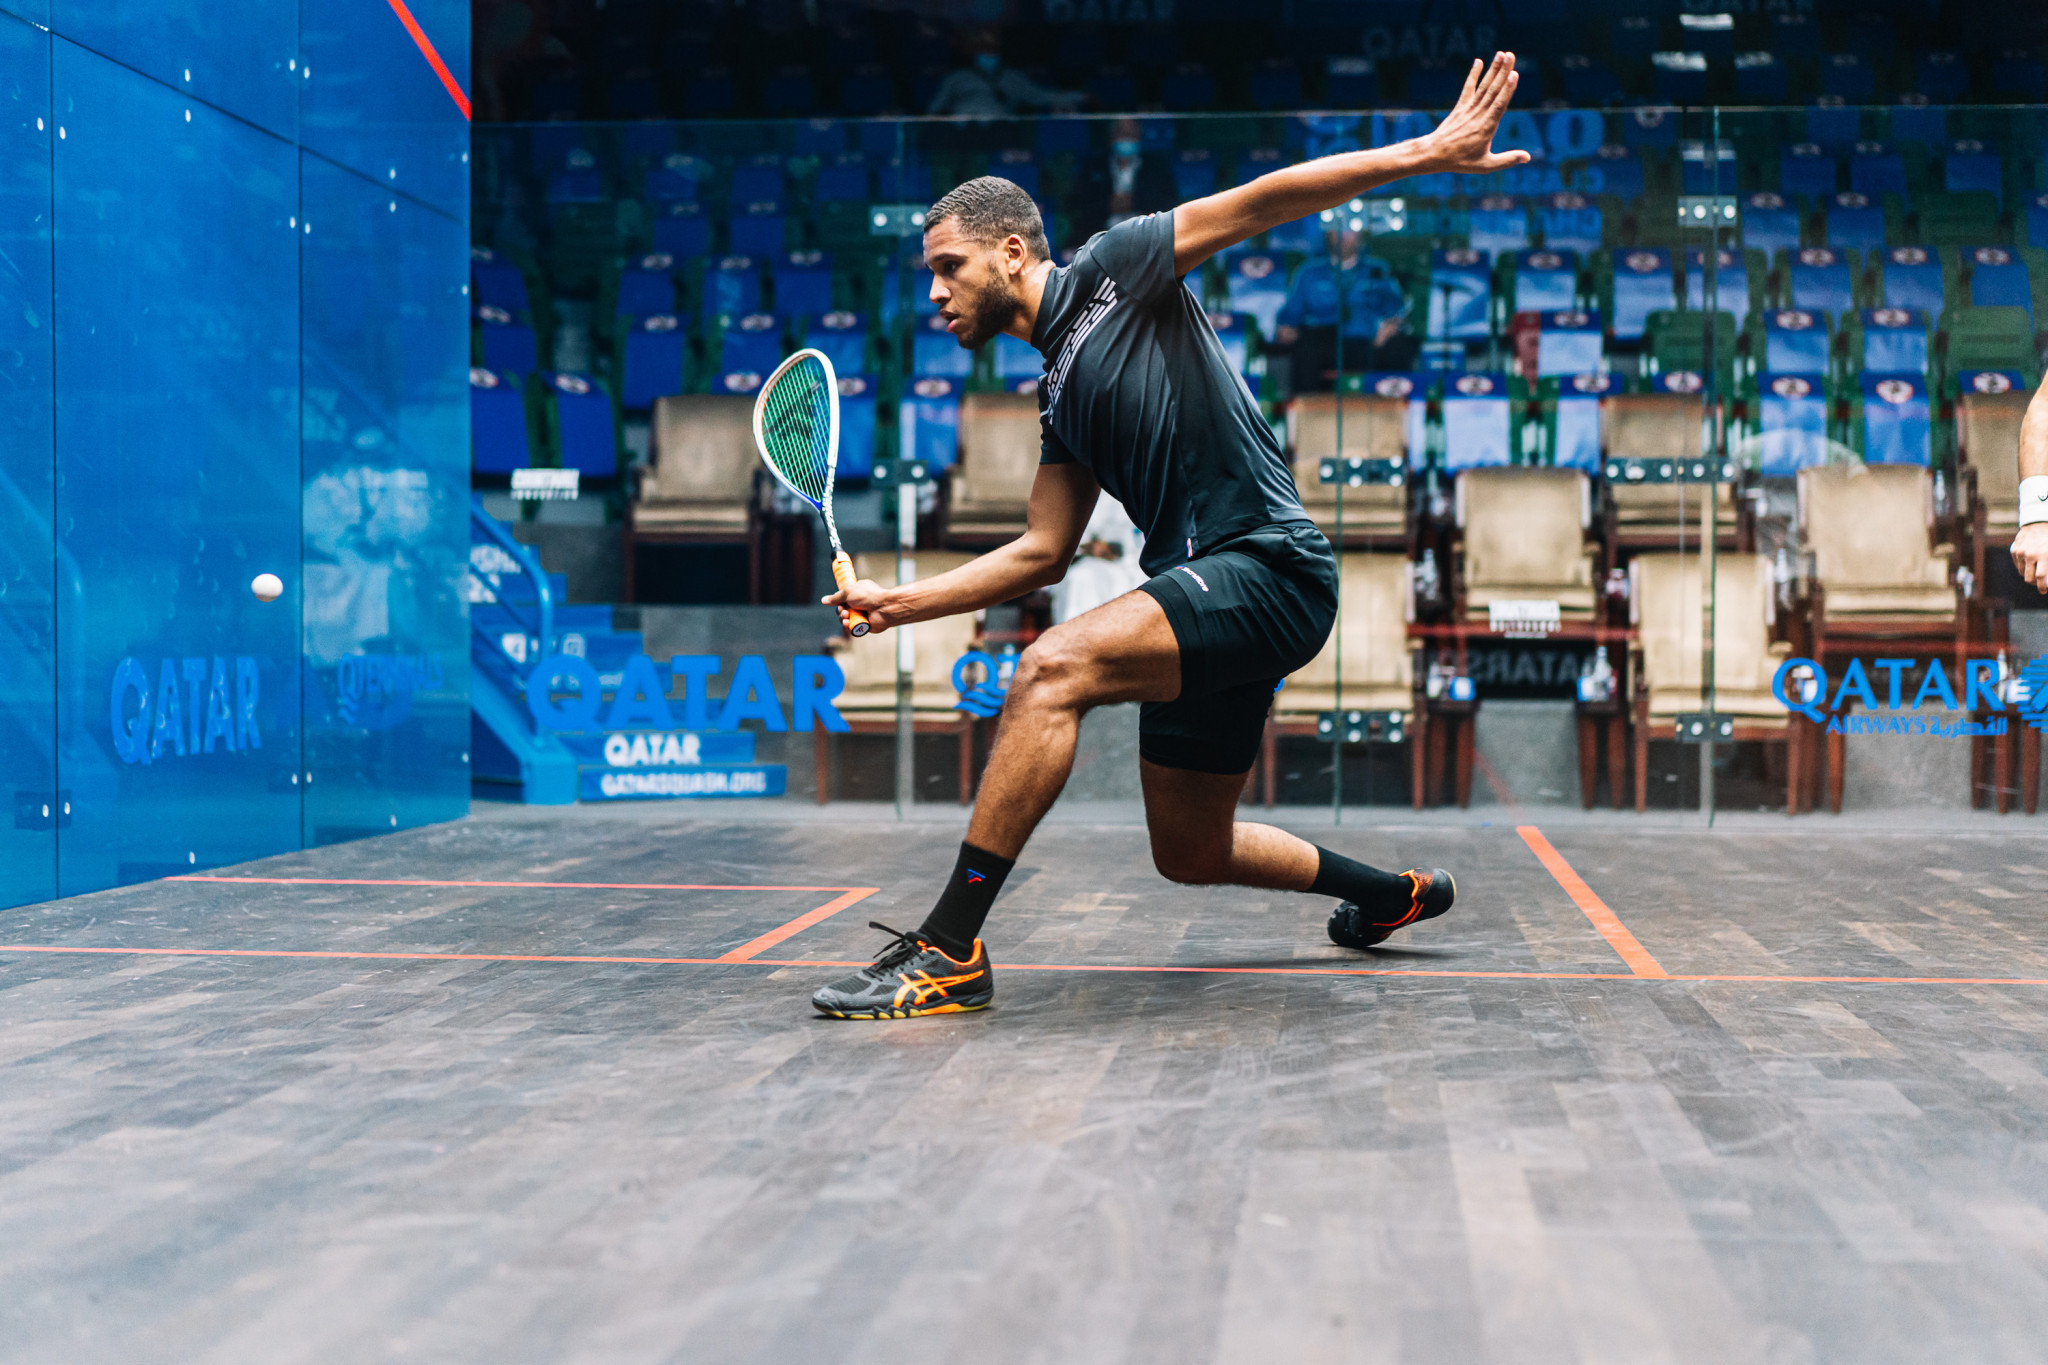 England's Richie Fallows beat Tayyab Aslam in the first round of the PSA Qatar Classic ©PSA